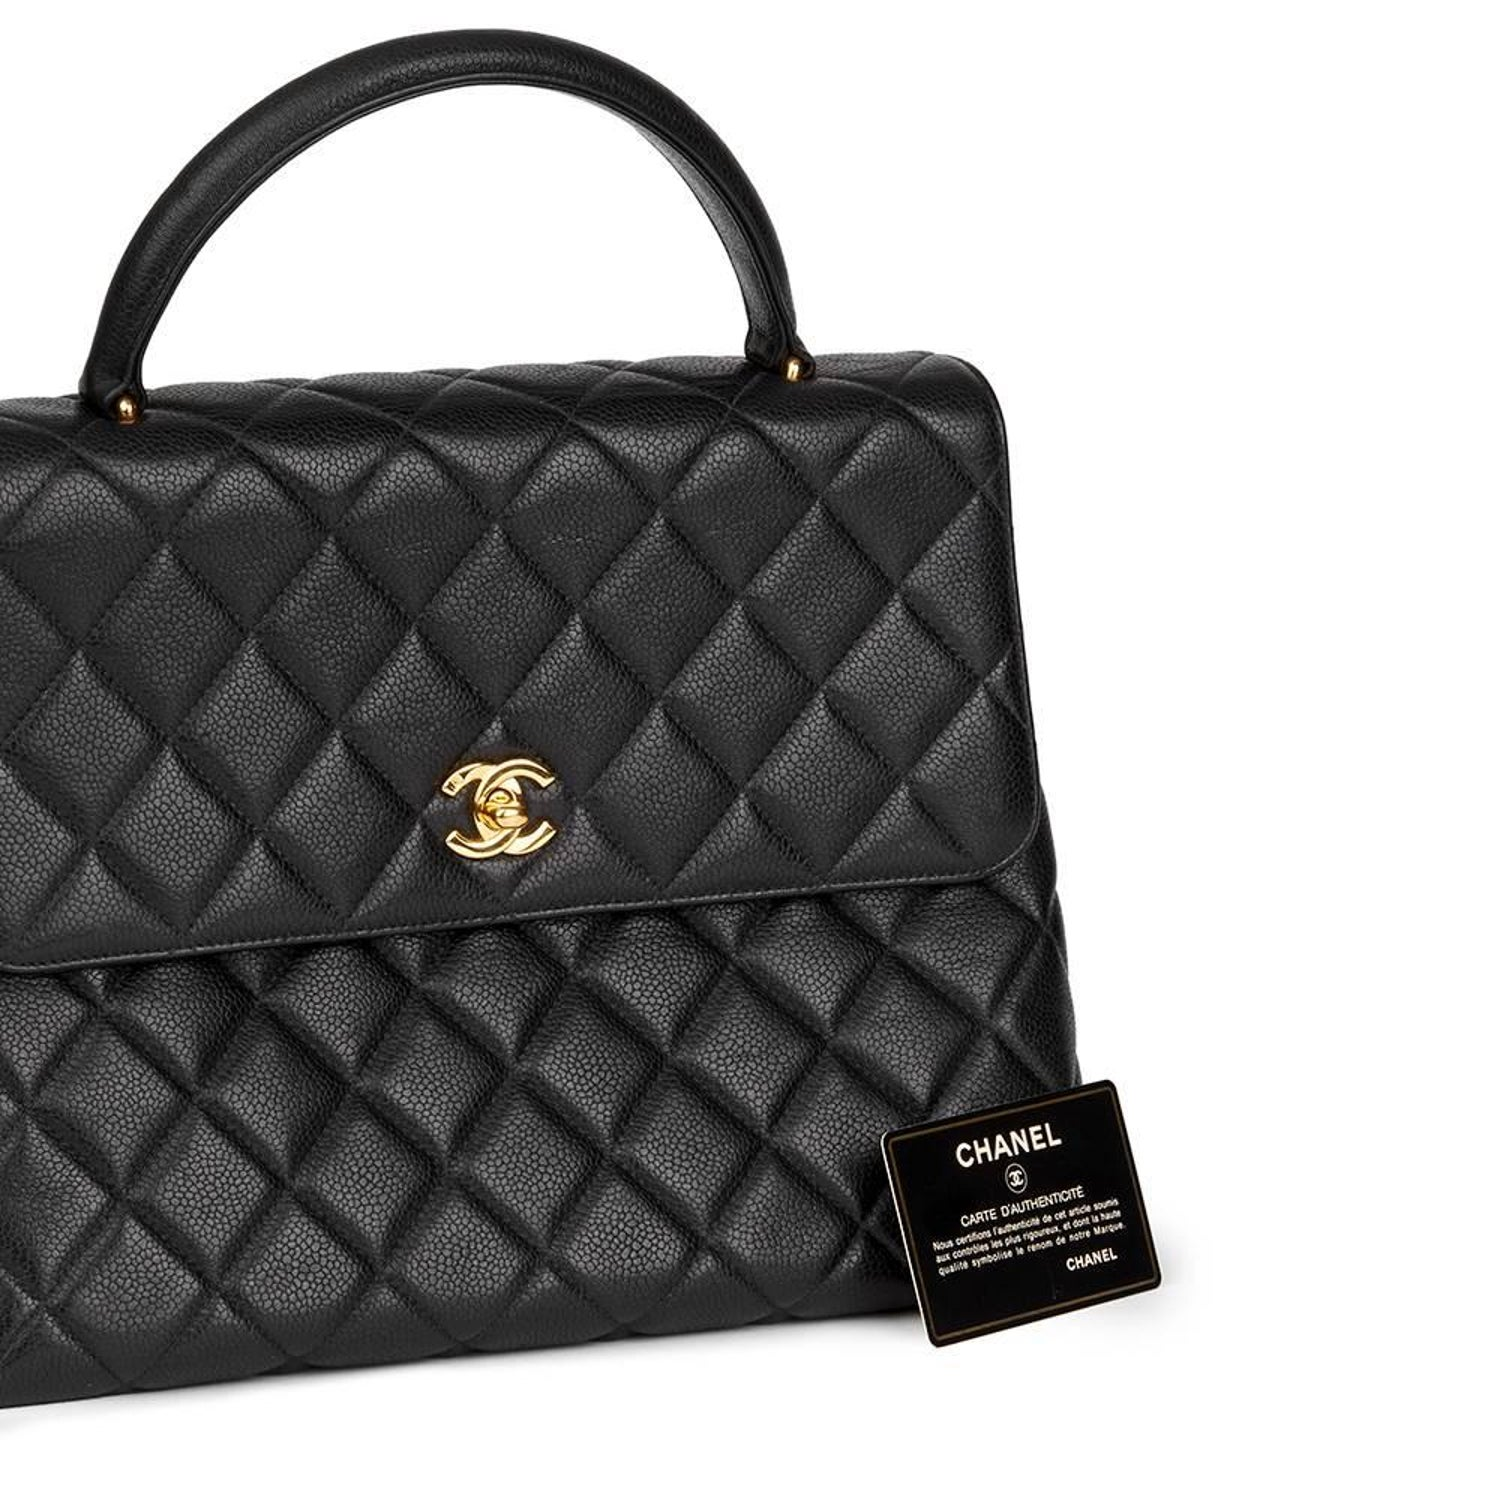 6edb9b60c8270f 1996 Chanel Black Quilted Caviar Leather Vintage Classic Kelly Flap Bag at  1stdibs